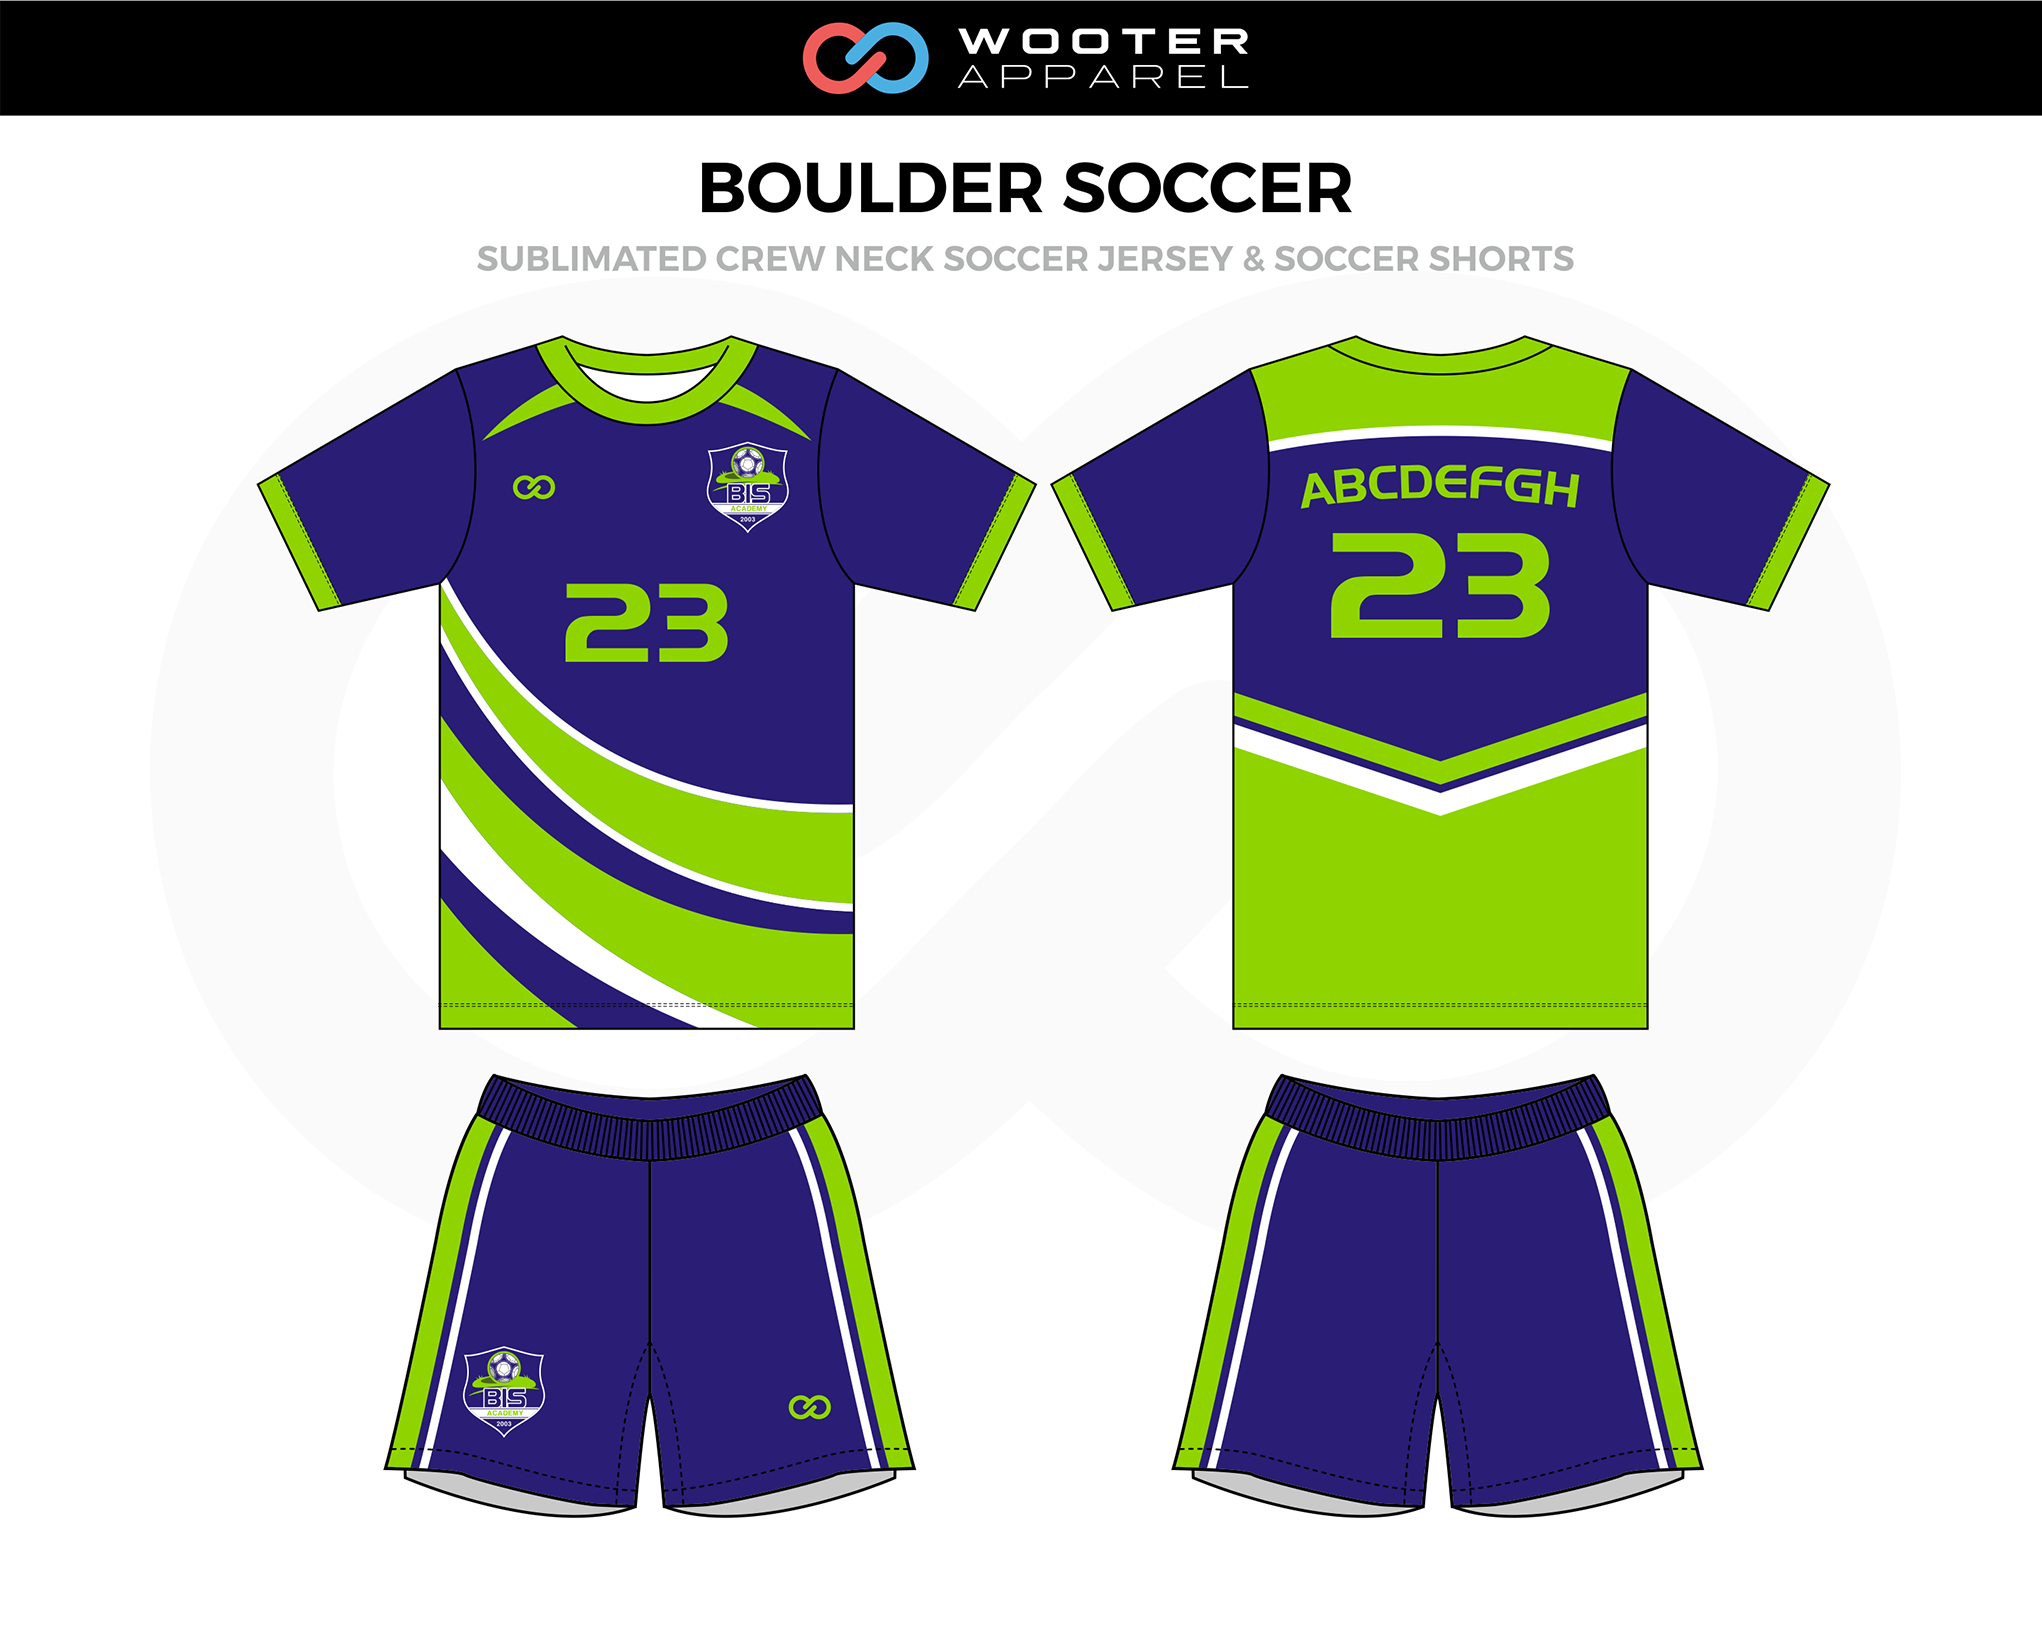 BOULDER Green Blue White Crew Neck Soccer Uniform, Jerseys, and Shorts